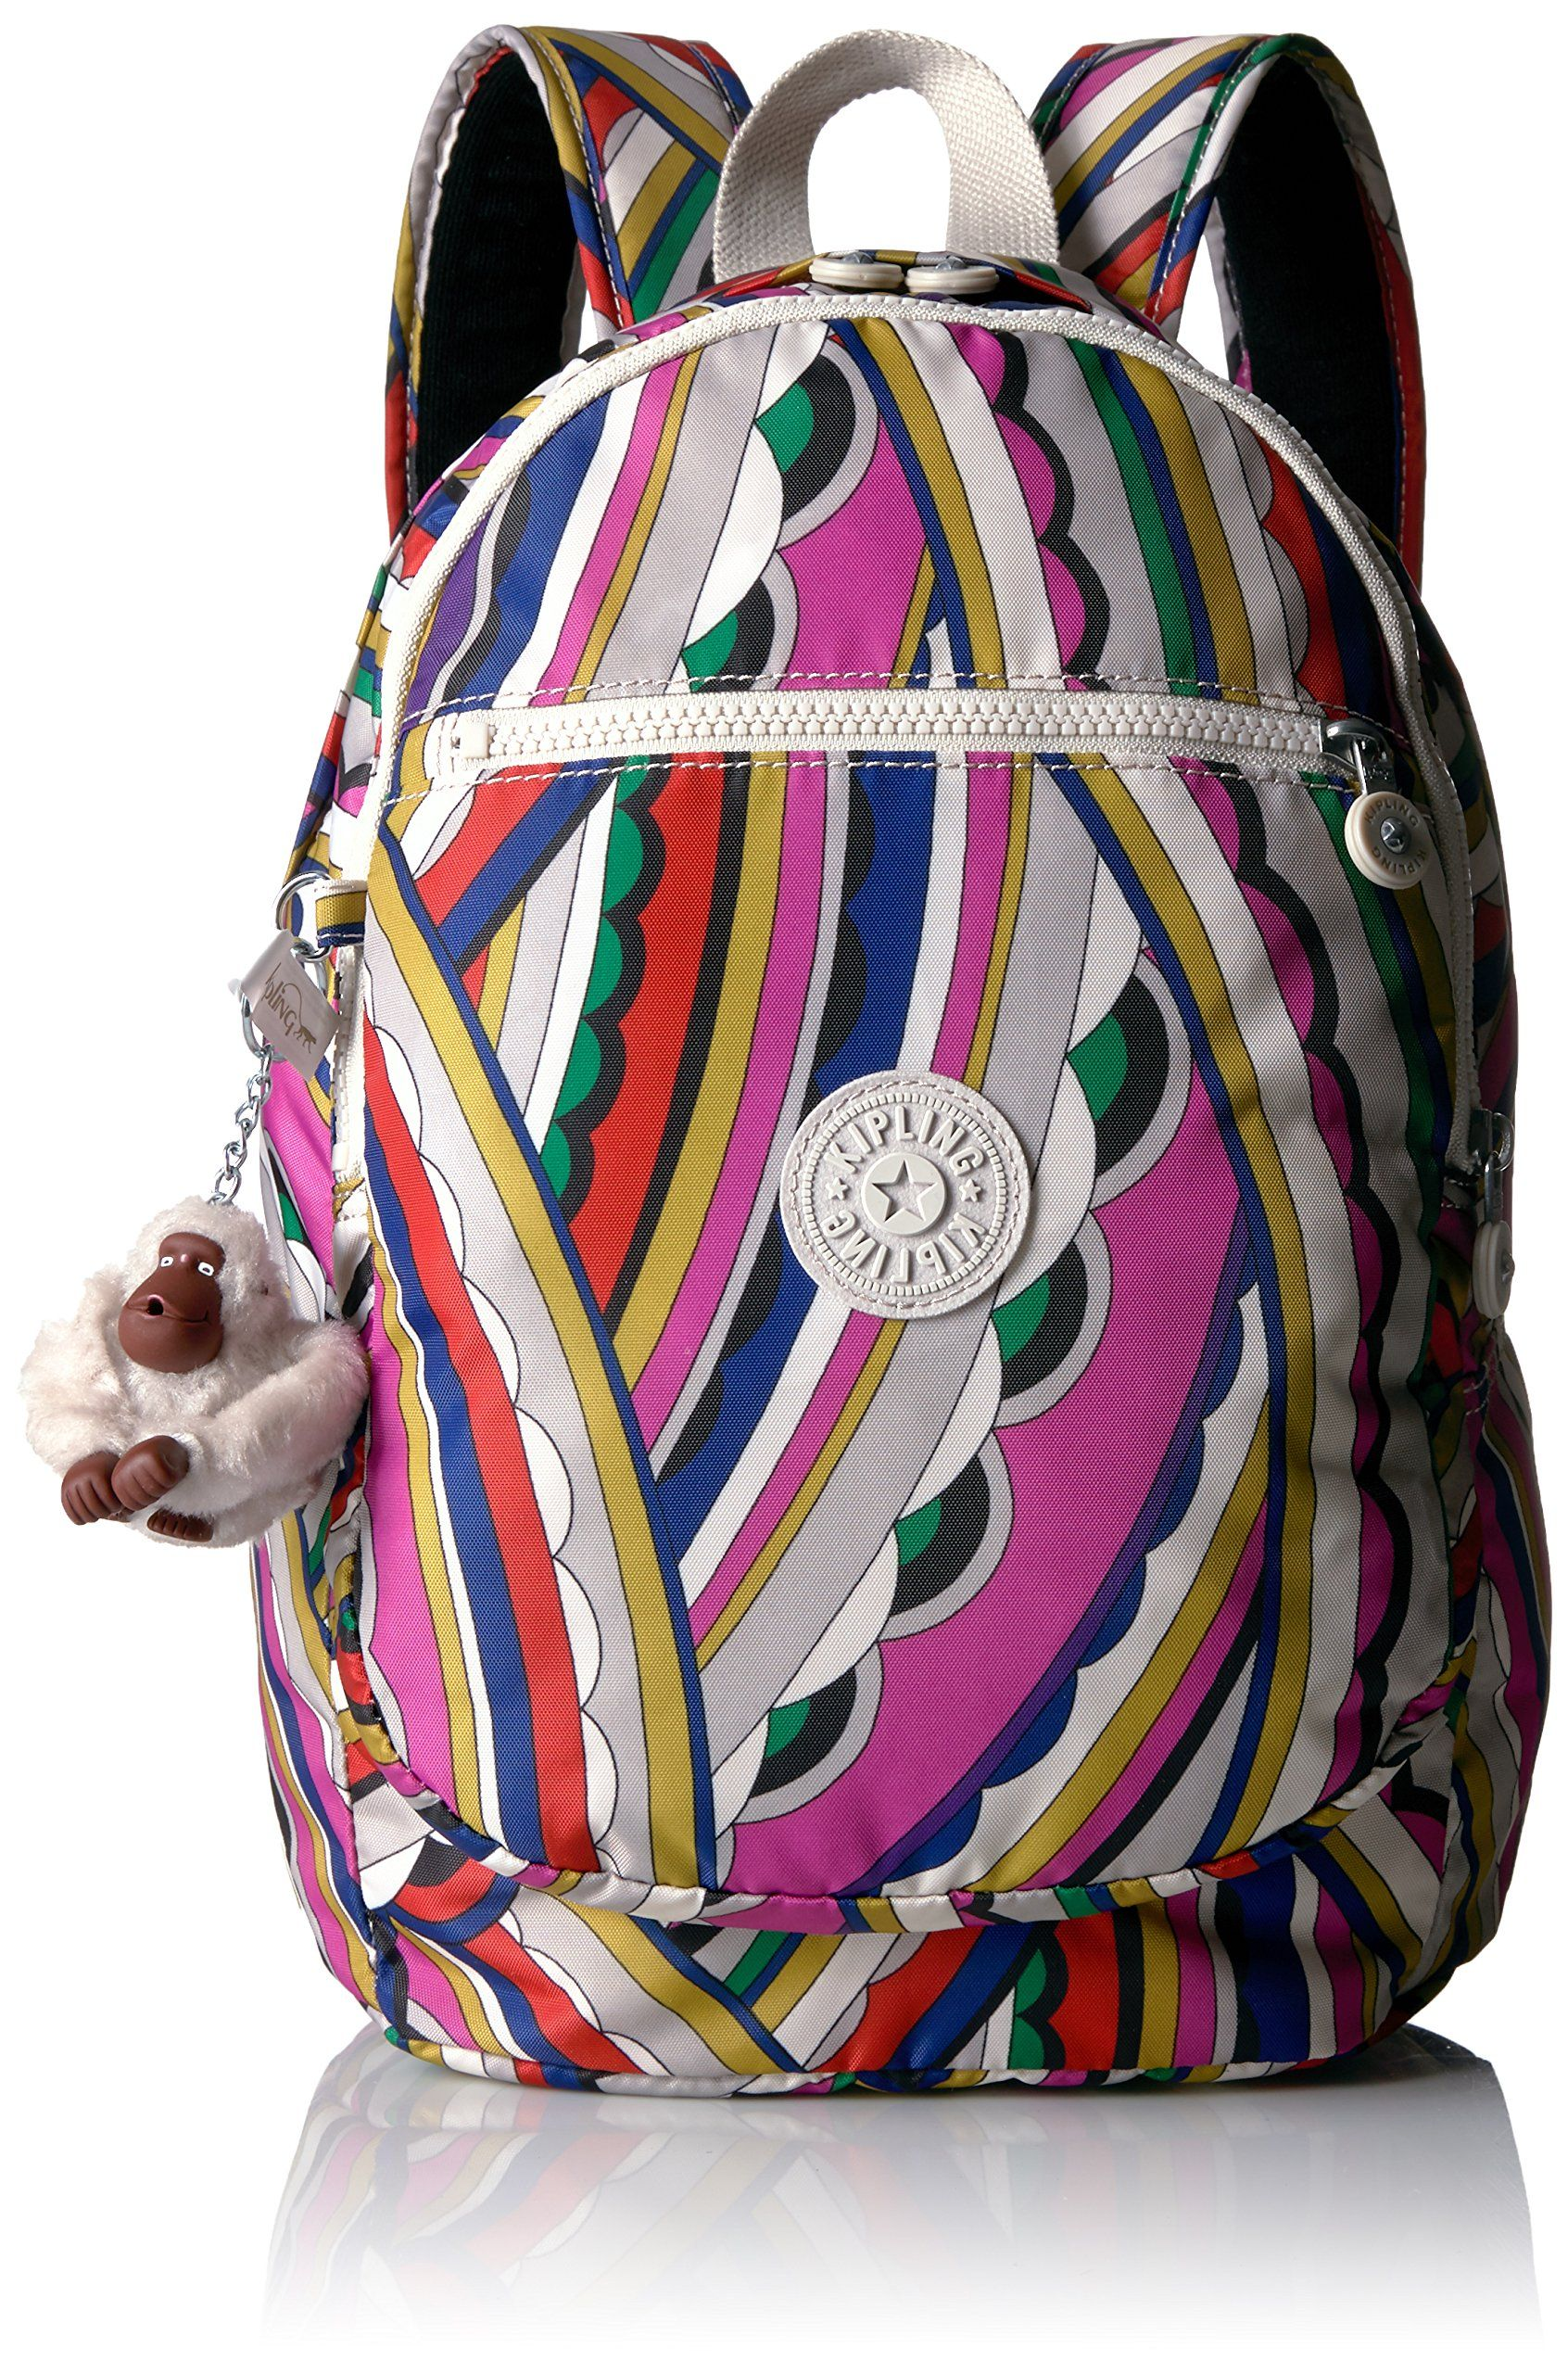 f14fe8656 Kipling Women's Challenger Printed Backpack, Bright Si De. Pockets: 1  interior slip,